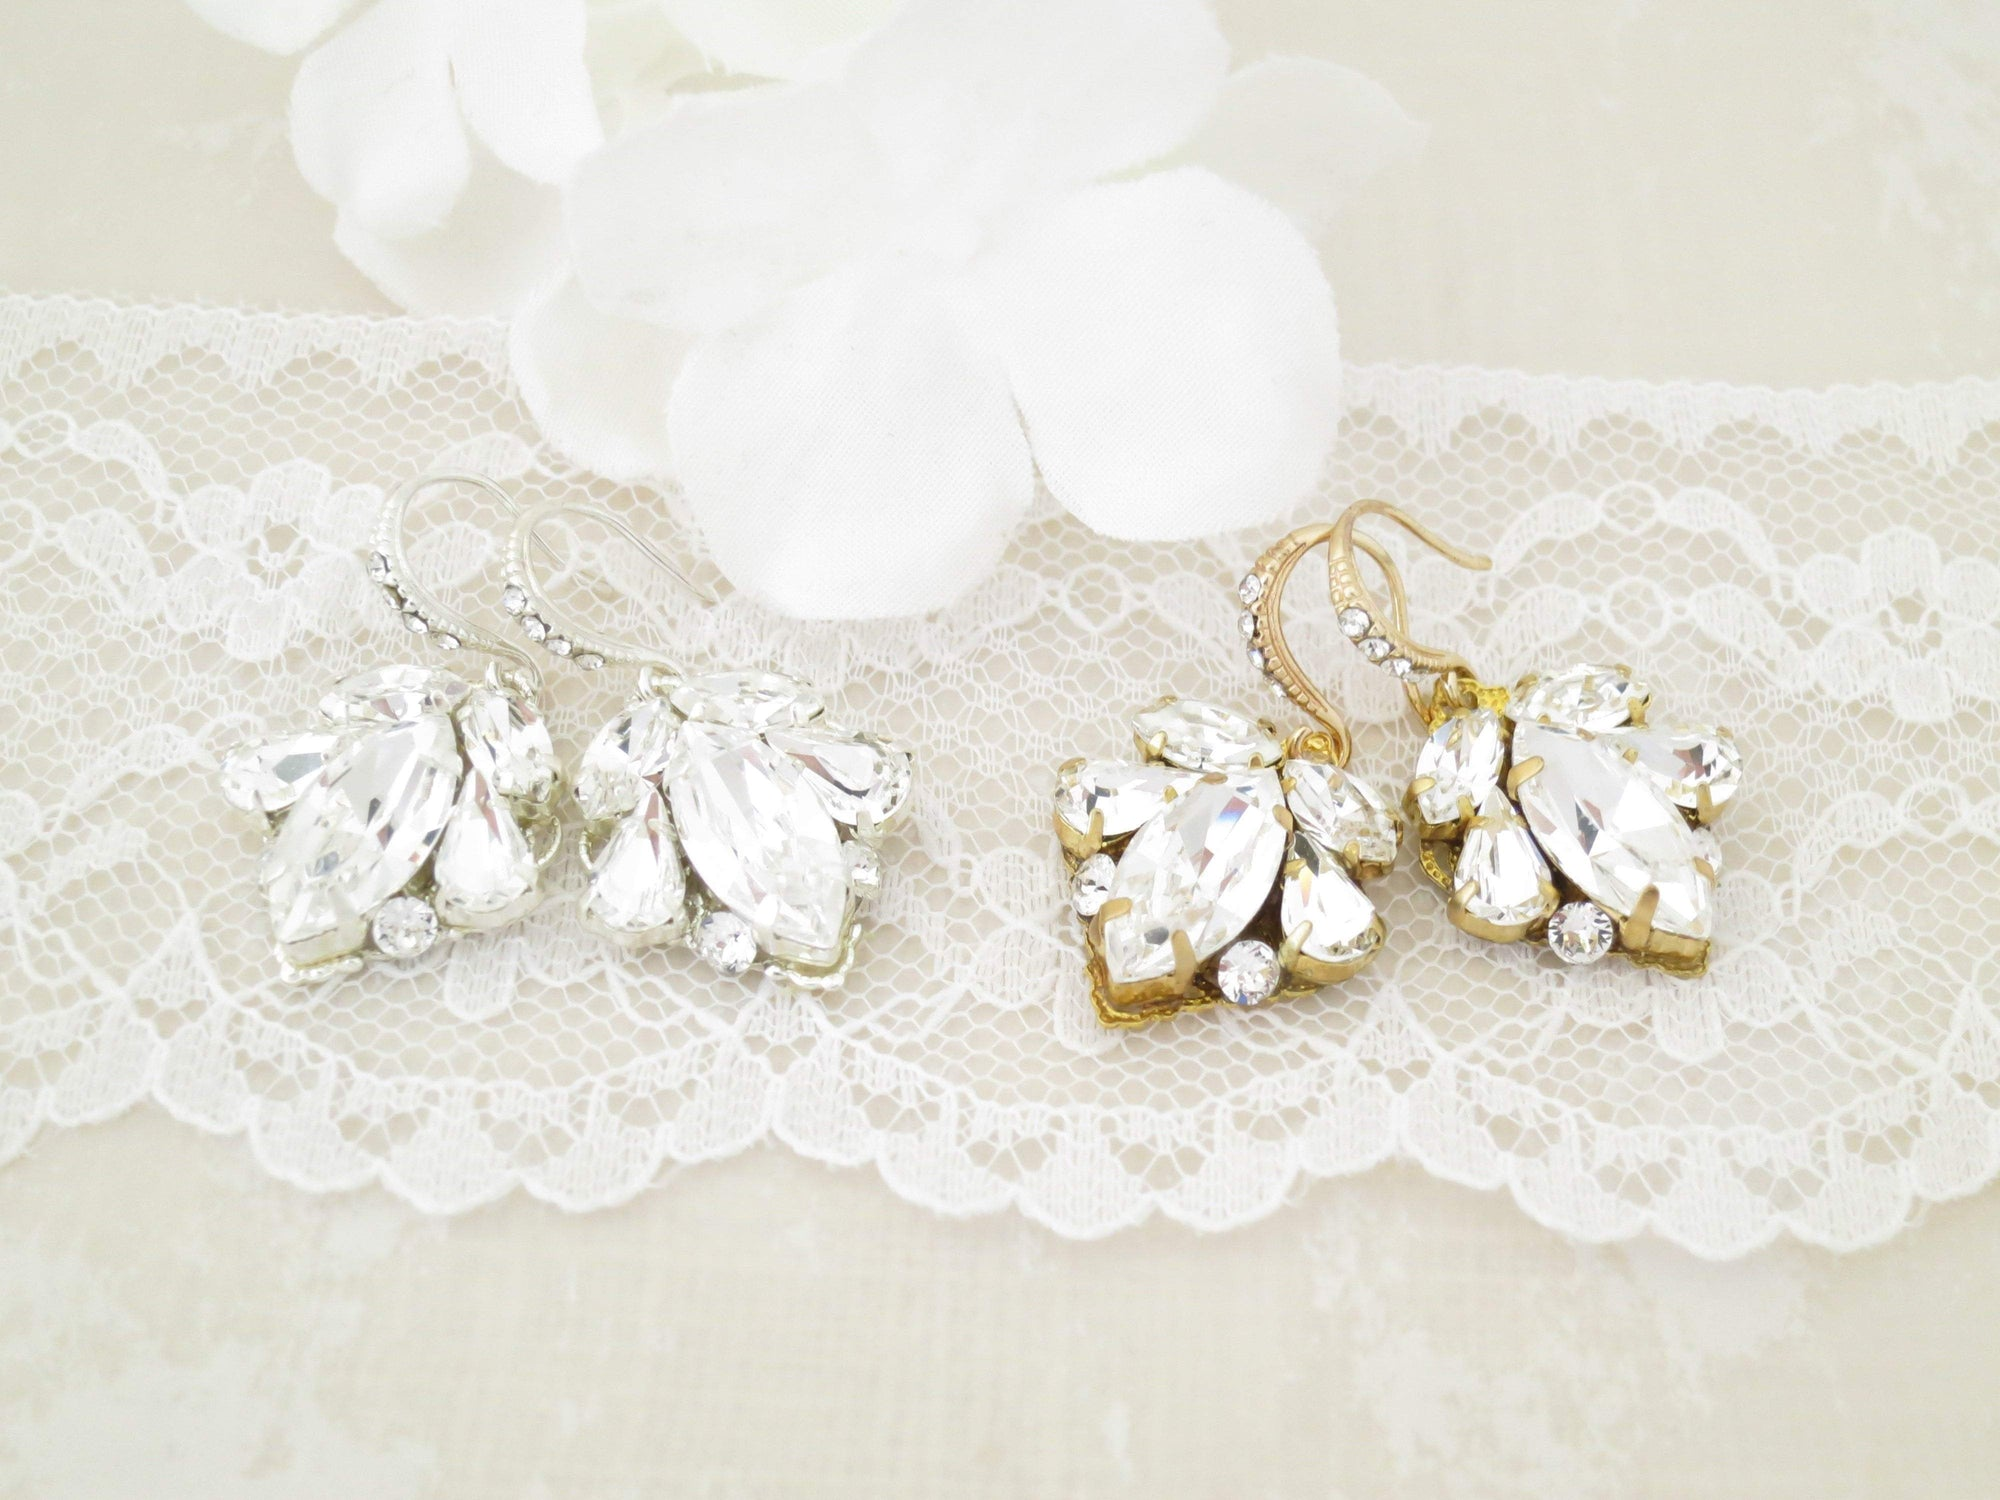 ELLE:  Crystal Marquise Bridal Earrings - BlingBaddaBoom - Minimalist, Vintage, Modern Wedding and Bridal Jewelry